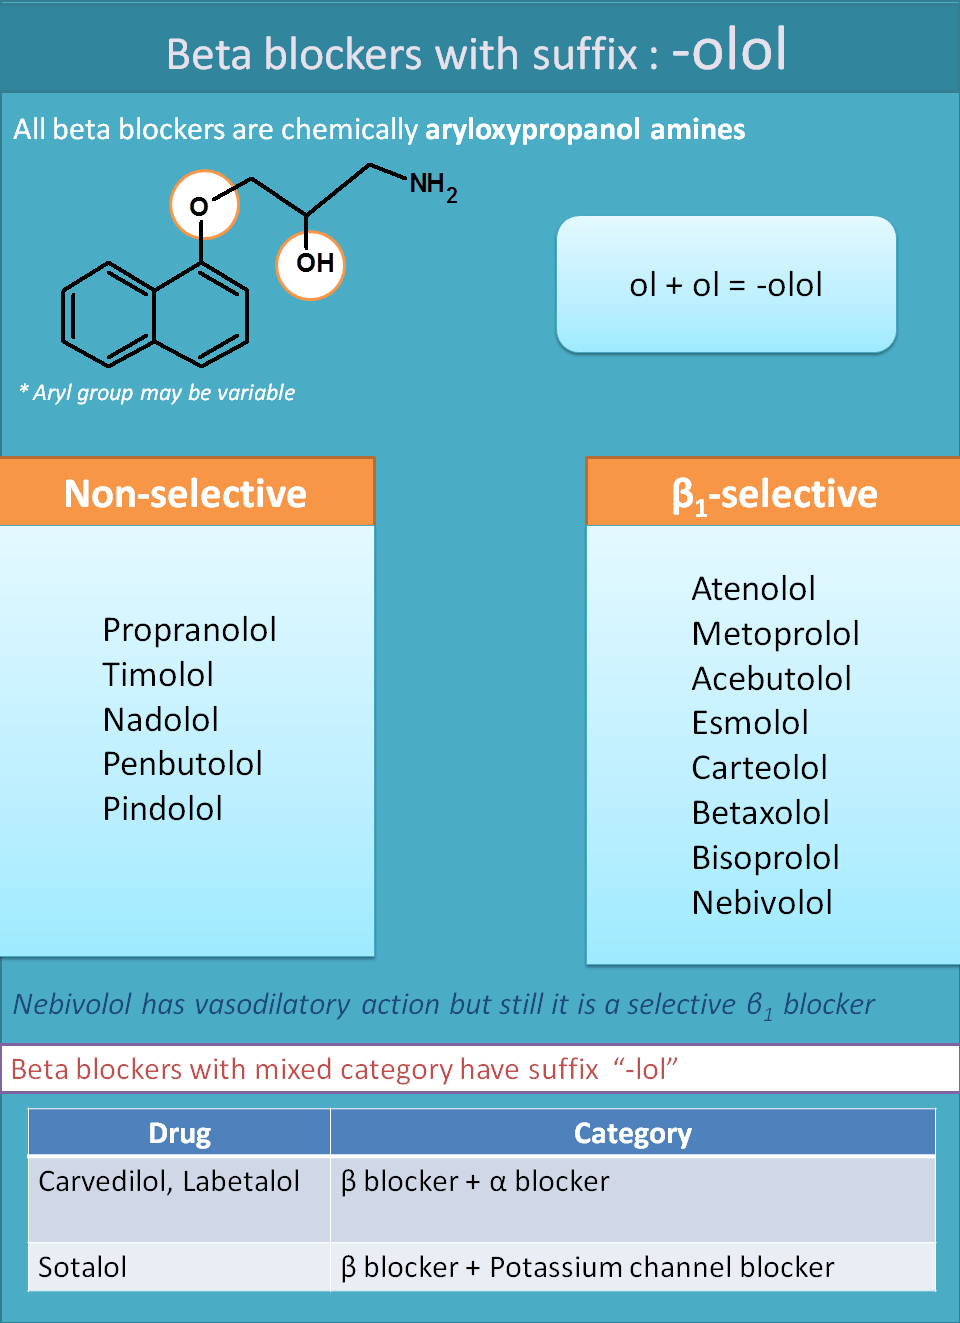 Suffixes of beta blockers